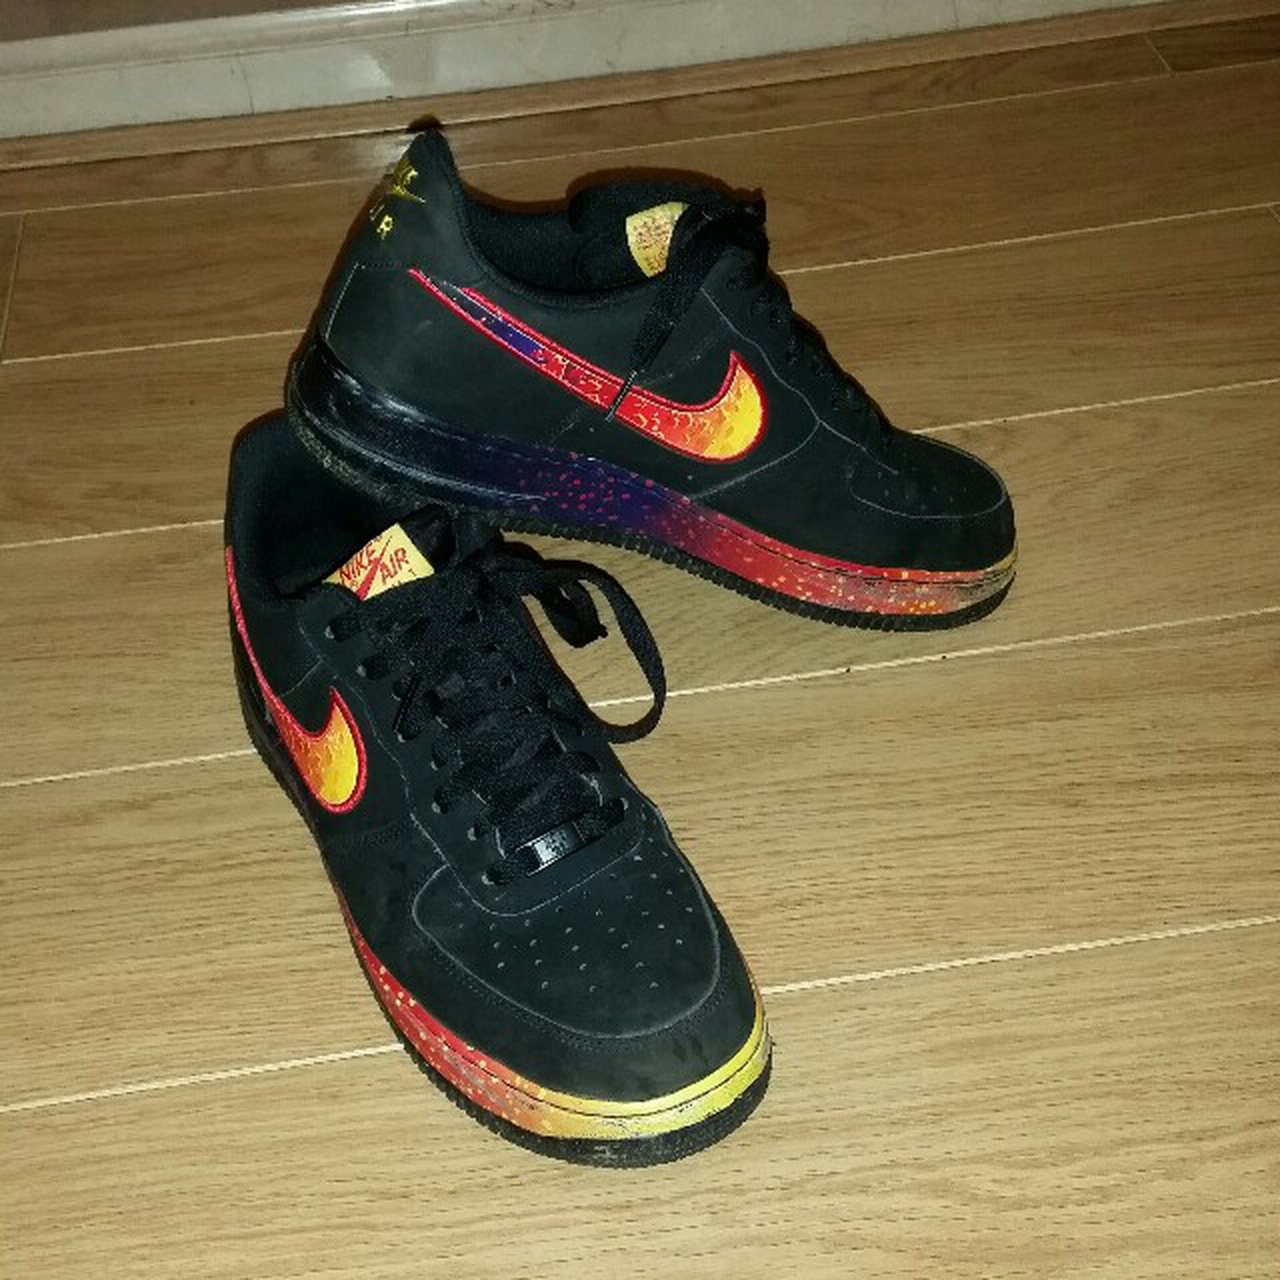 8e366567132 Nike air force asteroid rare message me with reasonable depop jpg 1280x1280  Nike af1 asteroids